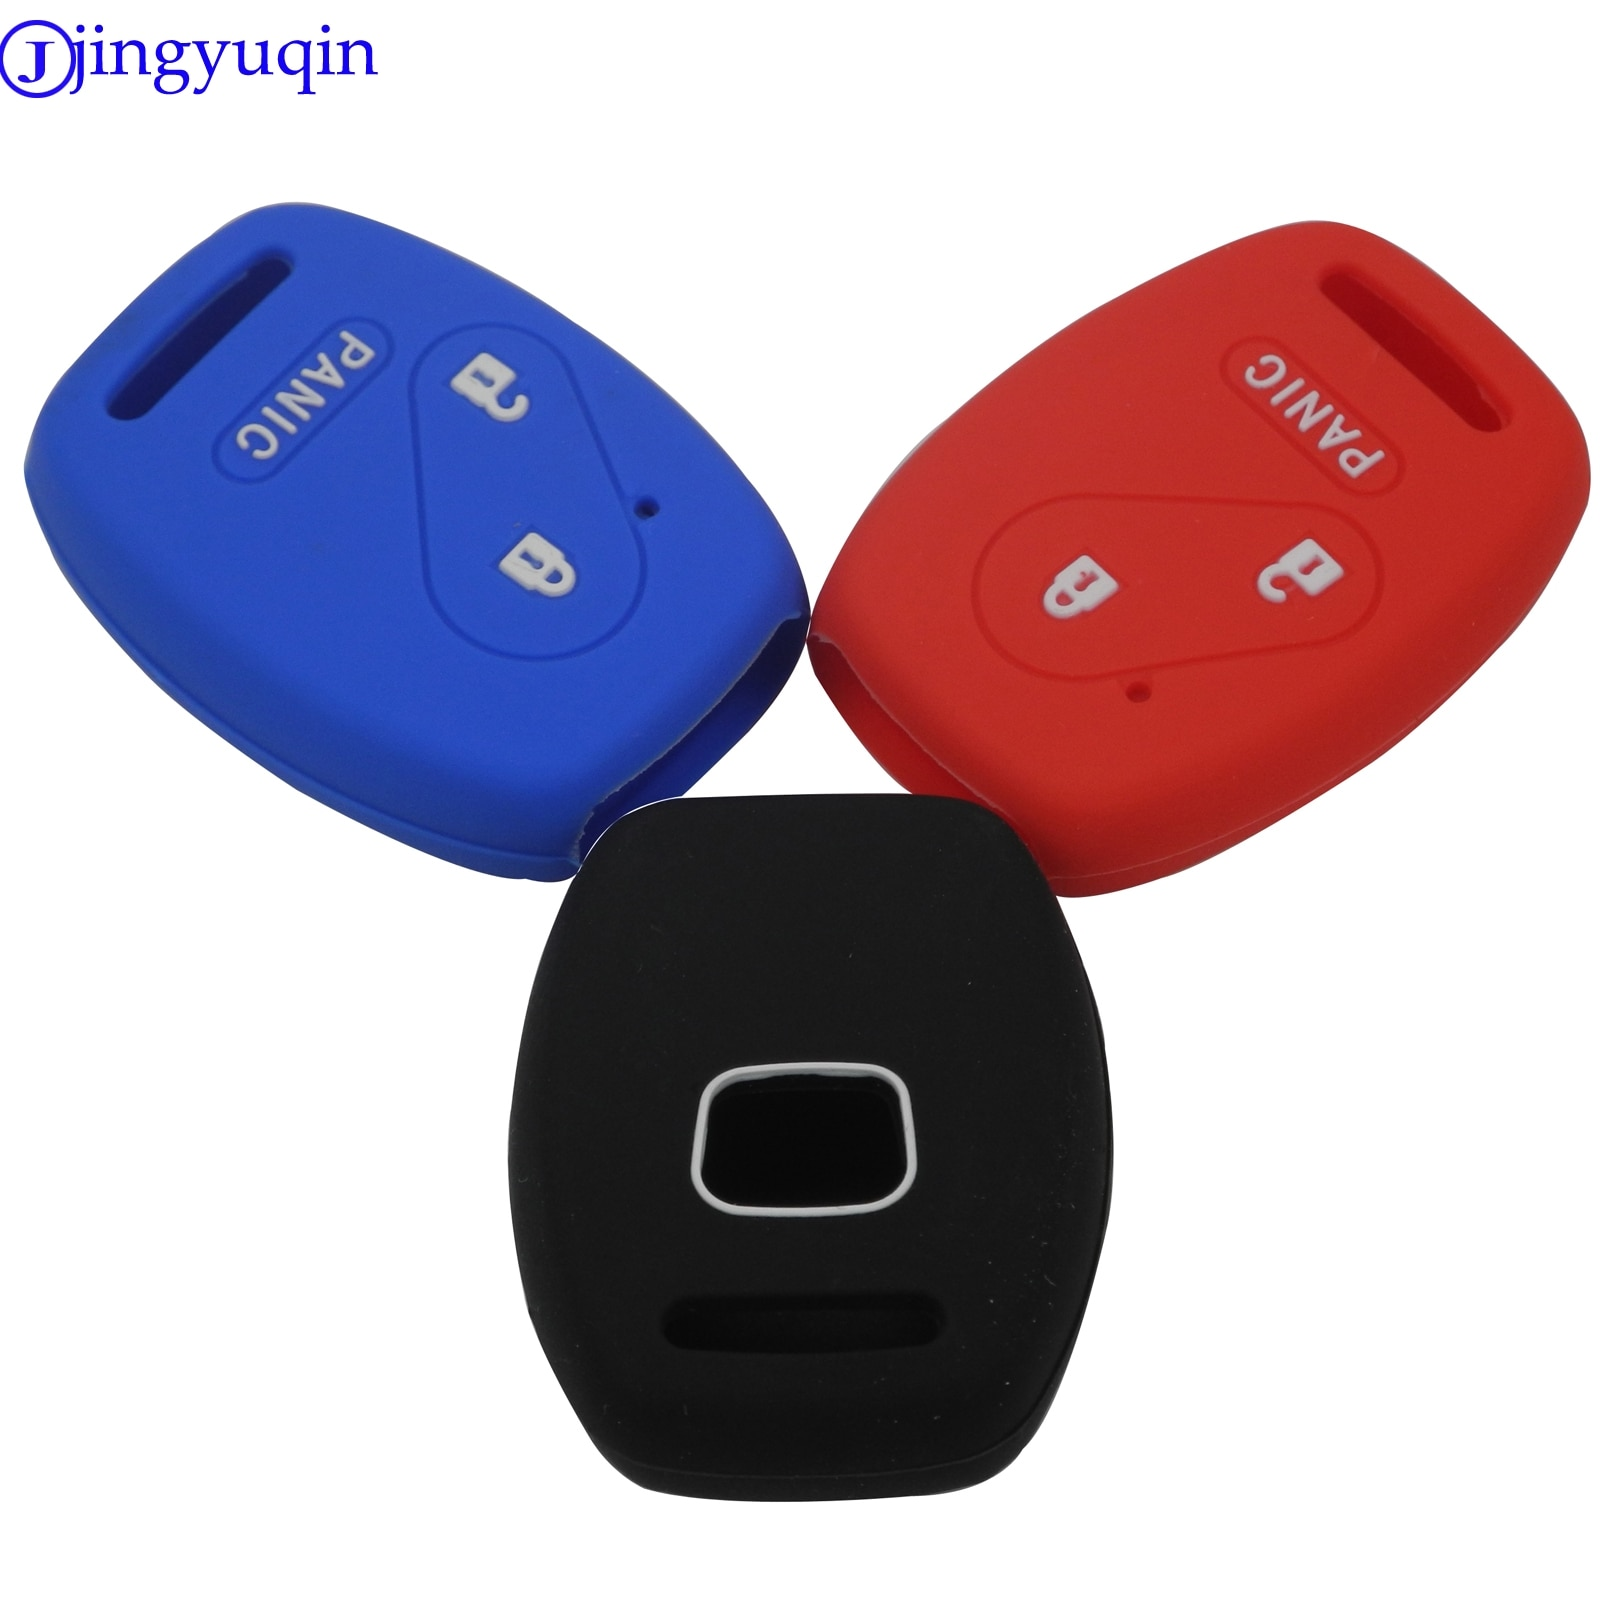 jingyuqin 2/3 Buttons Remote Silicone Key Cover Case for Honda fit INSIGHT Civic Accord CR-V Ridgeline Car-Styling